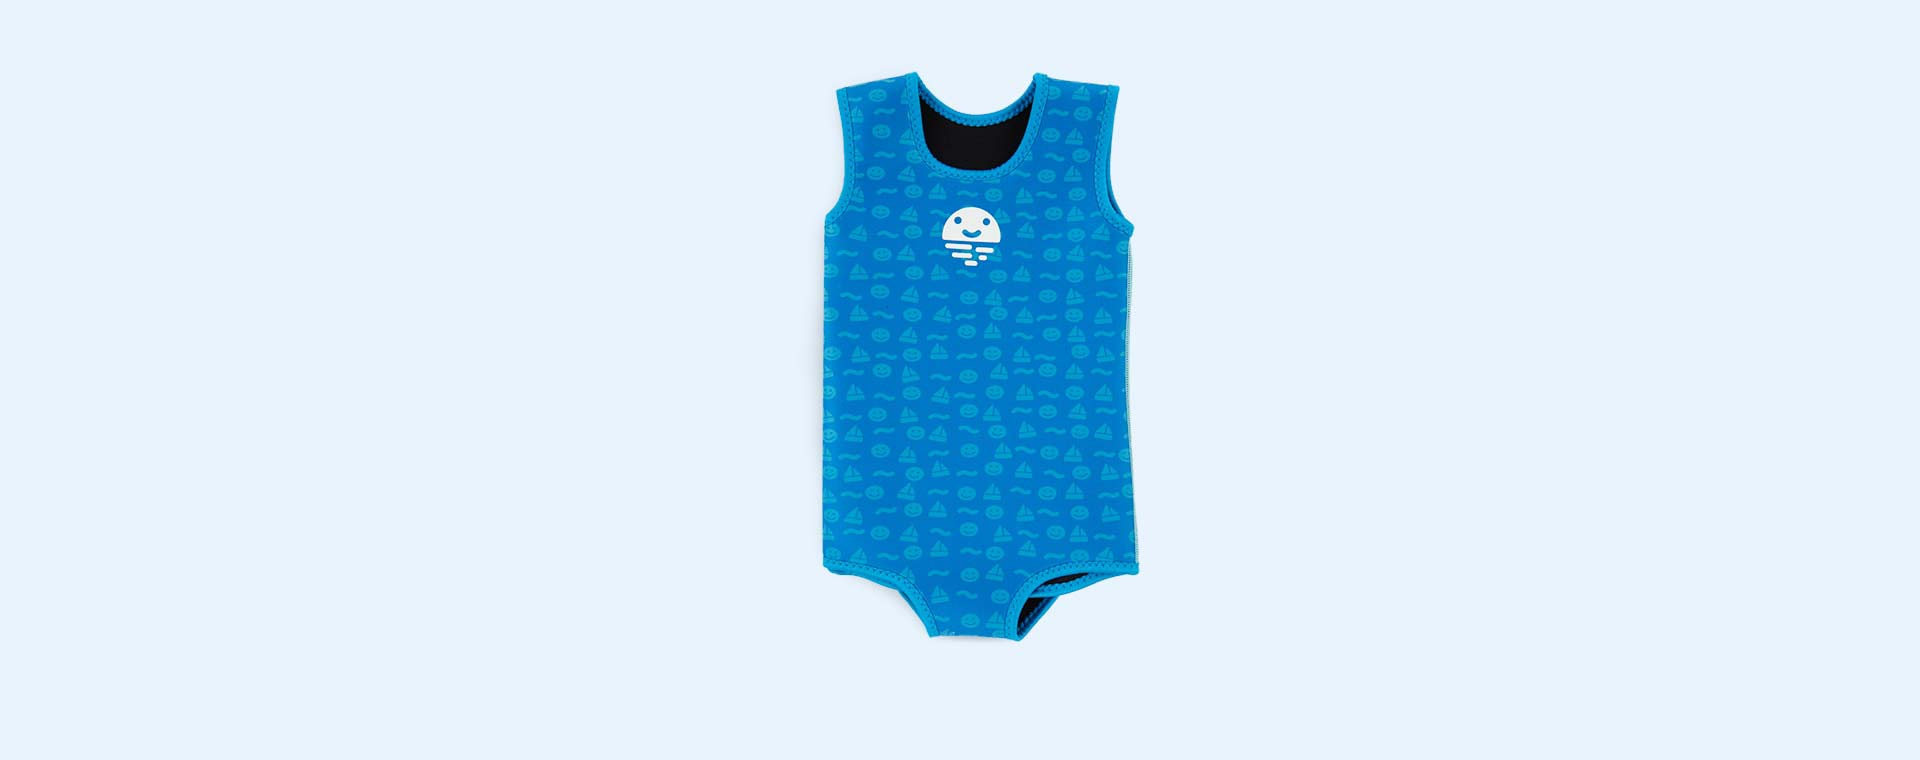 Blue Orby Orby Wrap